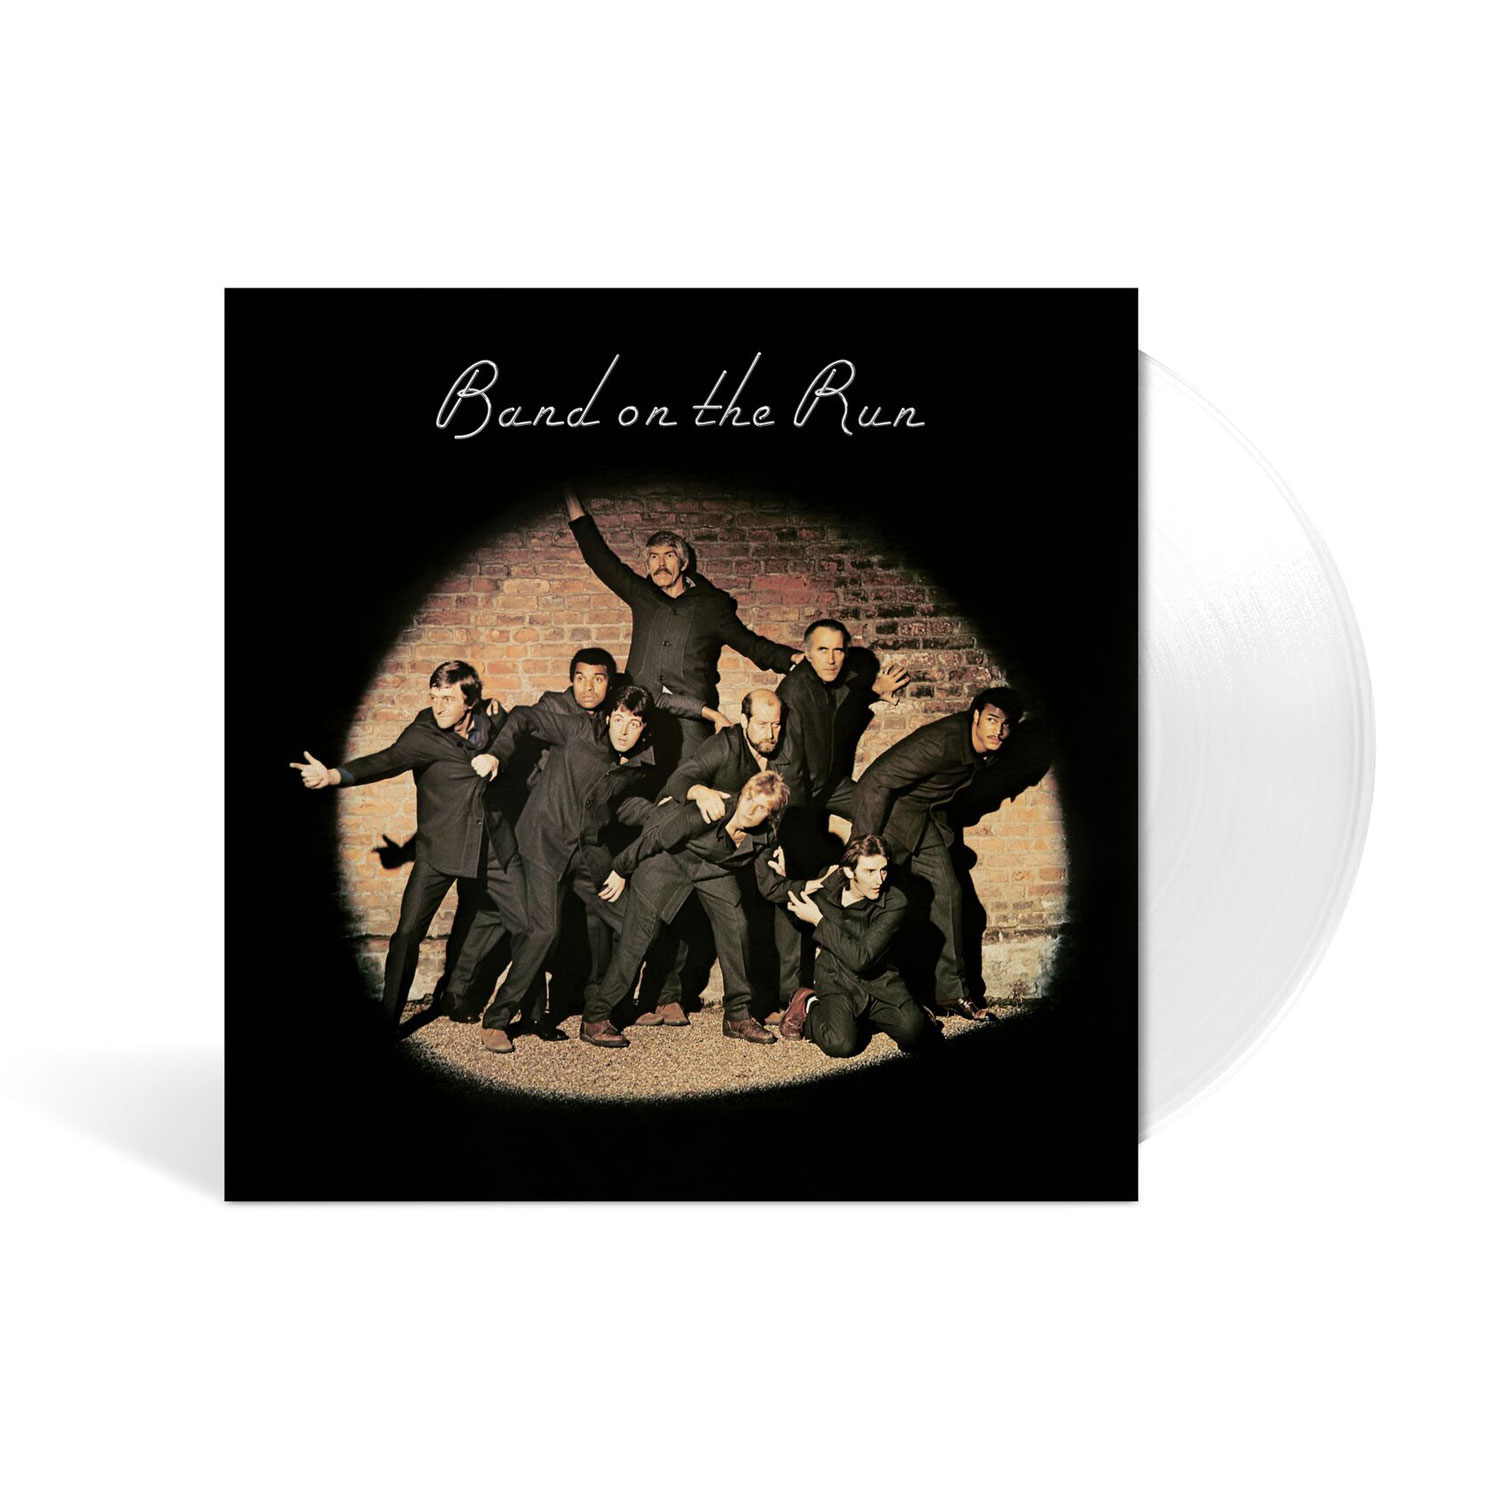 Band On The Run (Ltd./Excl. White Vinyl) von Paul McCartney - LP jetzt im Bravado Shop